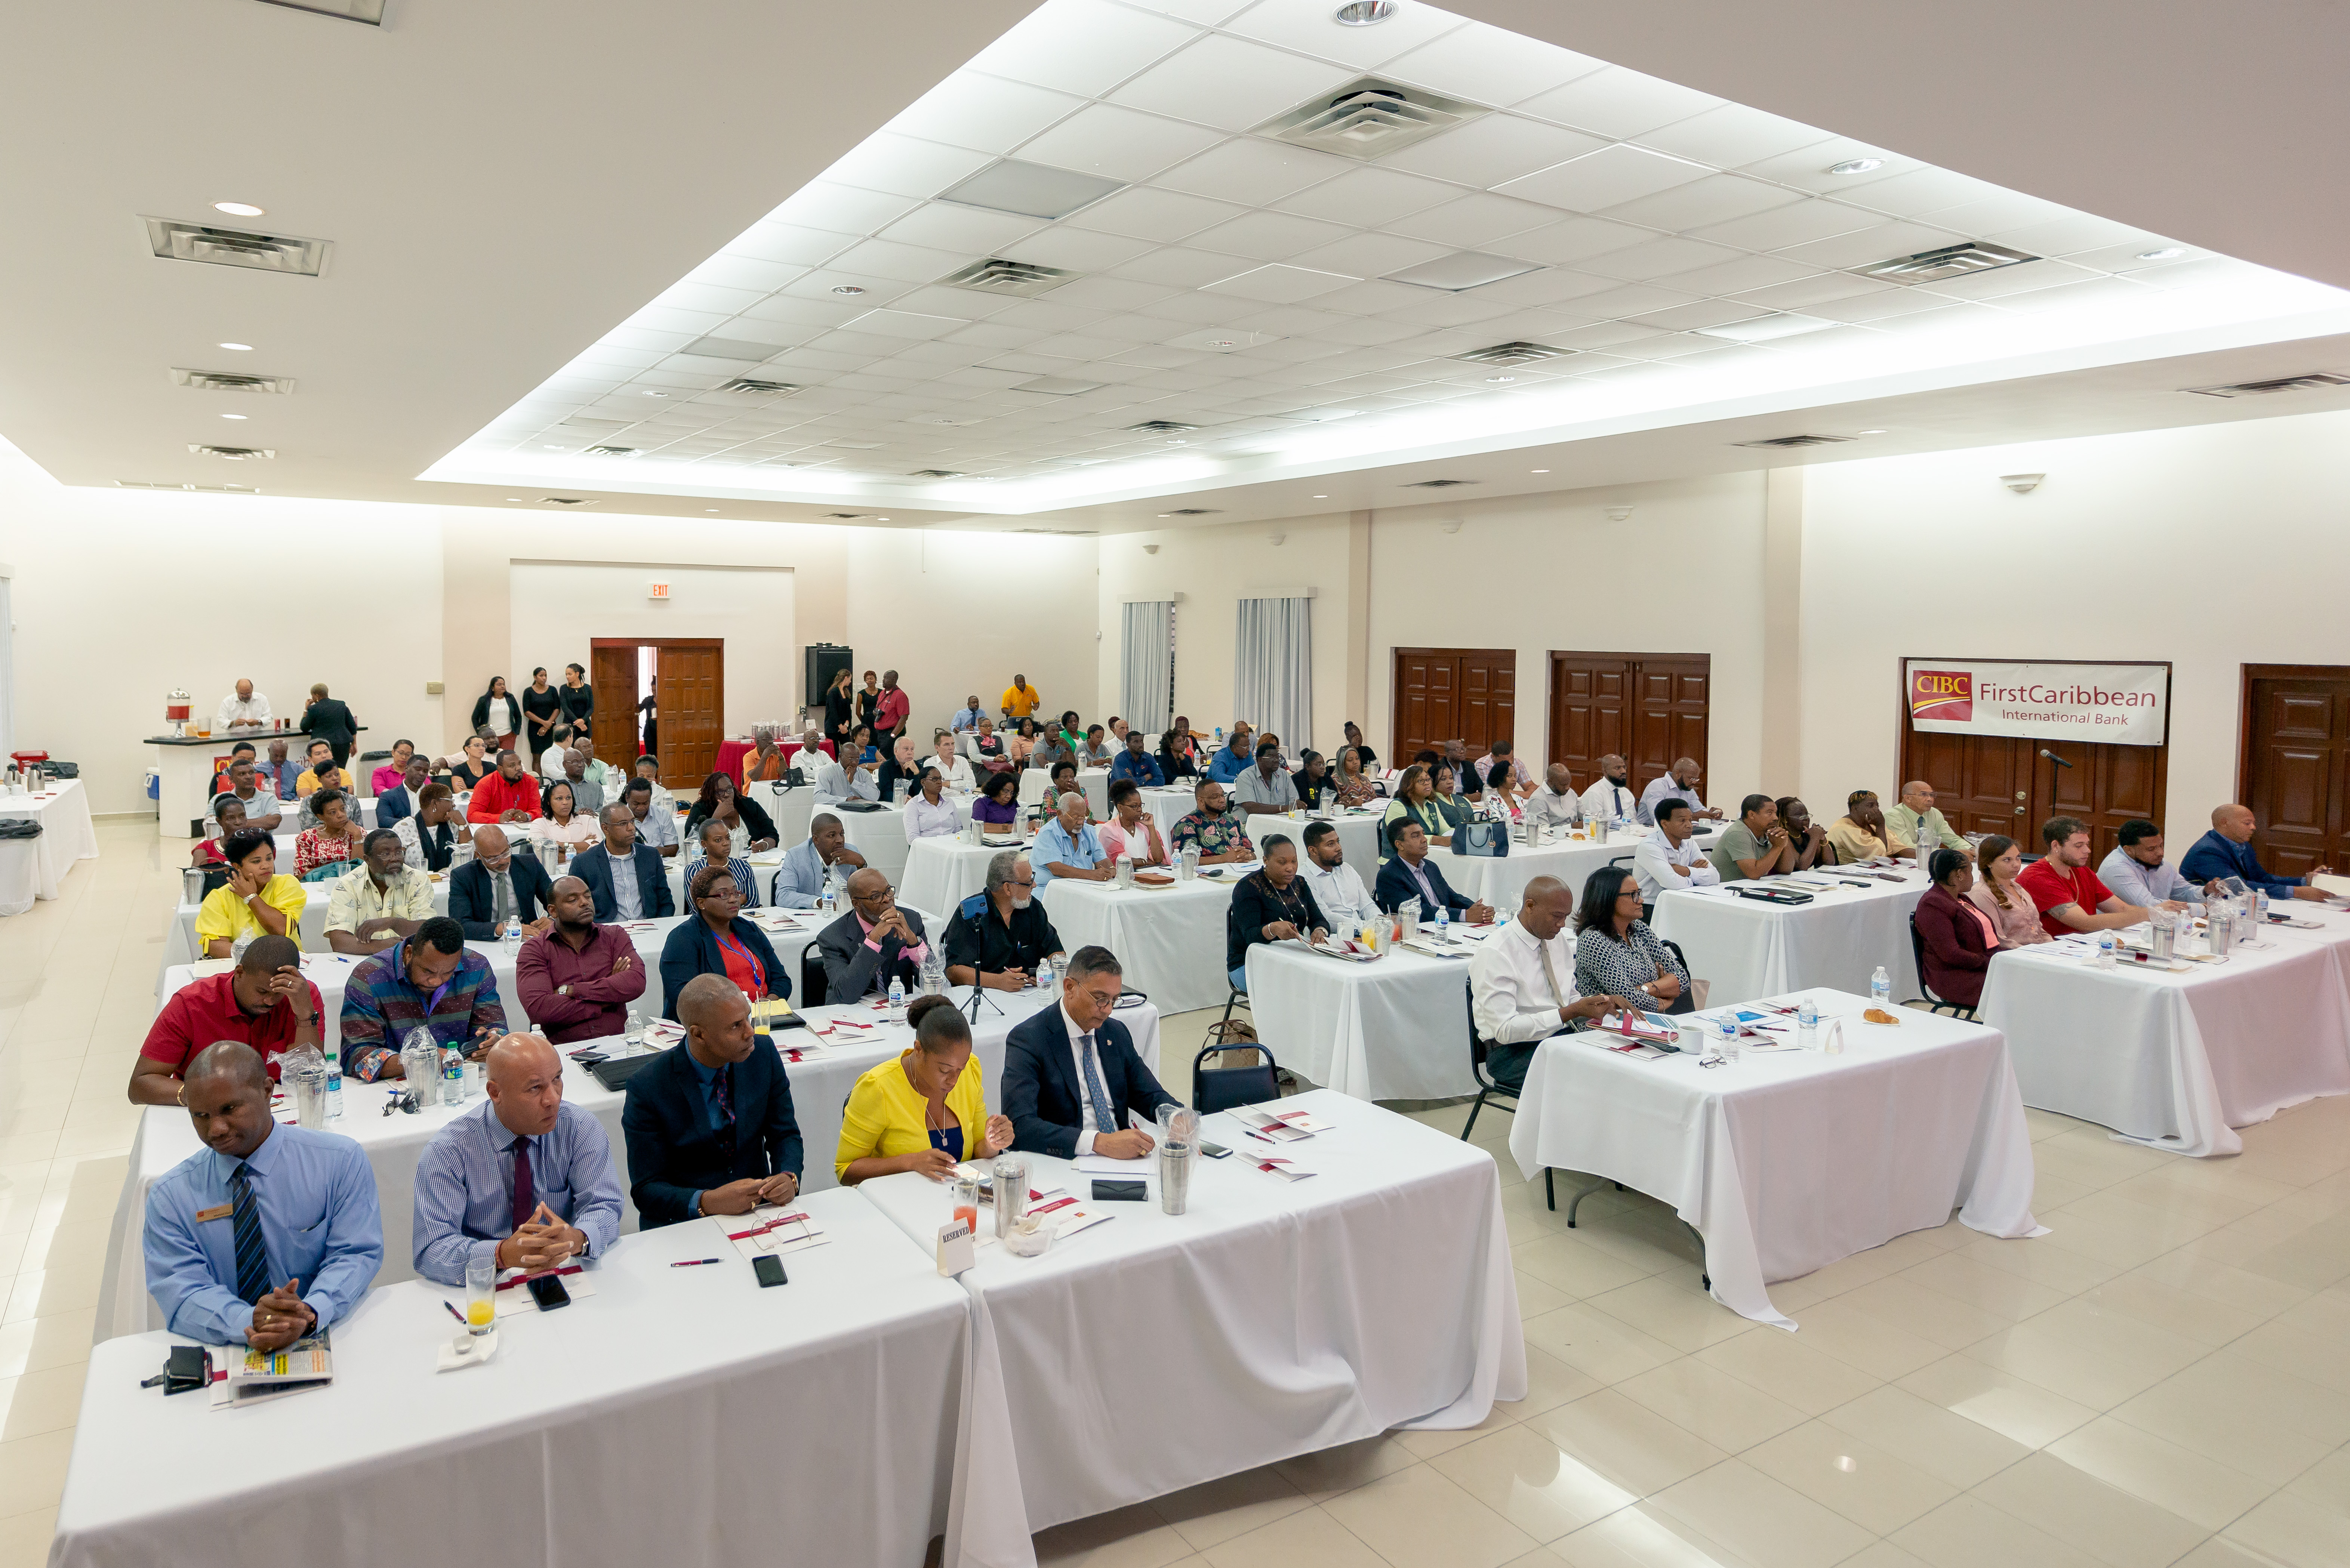 CIBC FirstCaribbean's First in Business Seminar at Belair Community Center March 14th 2019 - - - Richard Hazel Photo